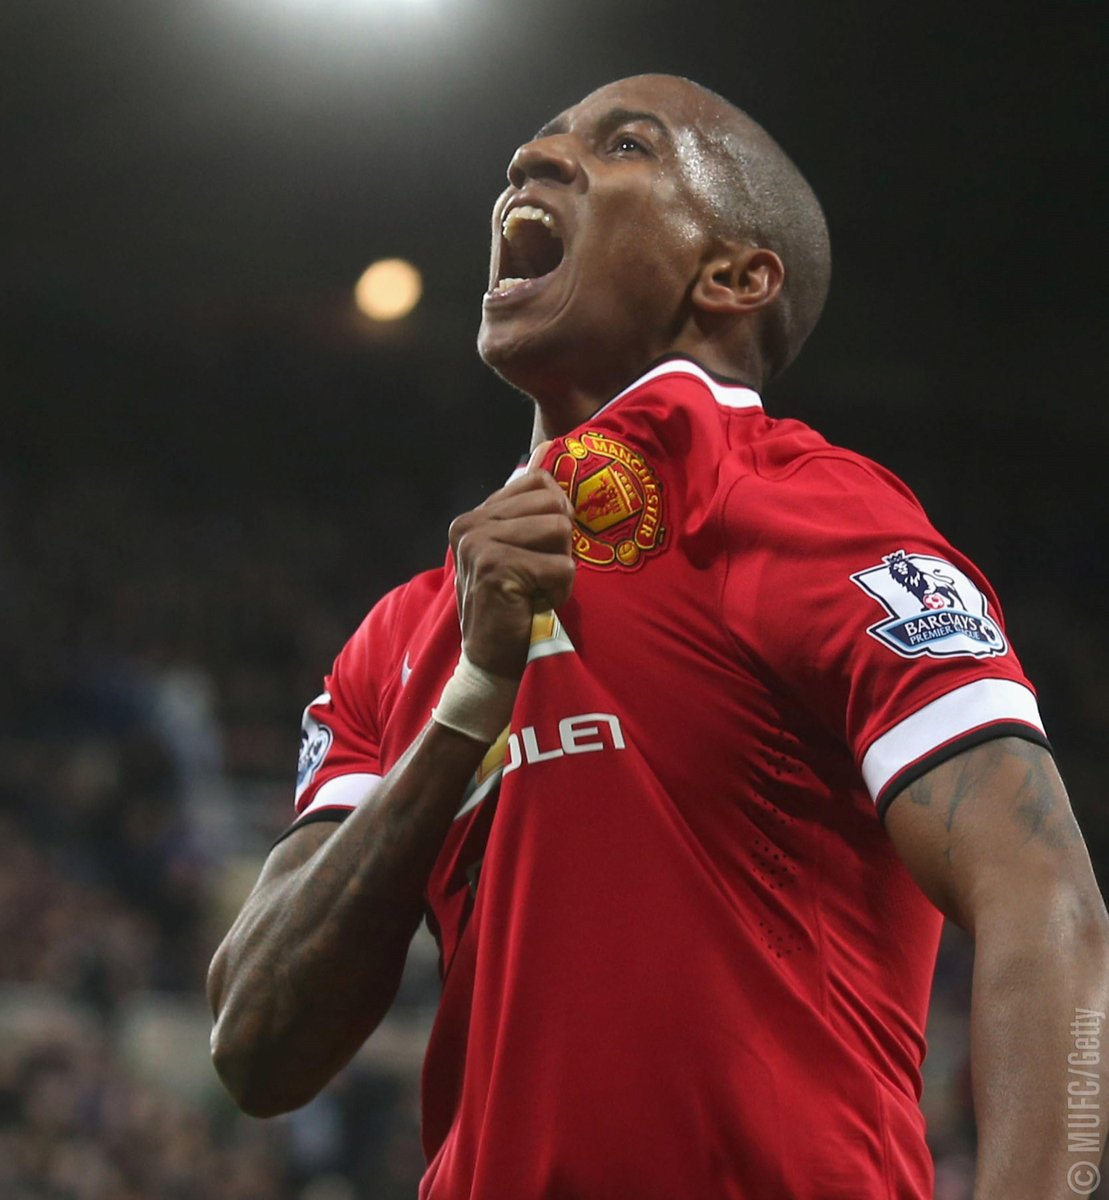 Six years ago today, @Youngy18 signed for #MUFC! 🙌 https://t.co/dSQuTC...